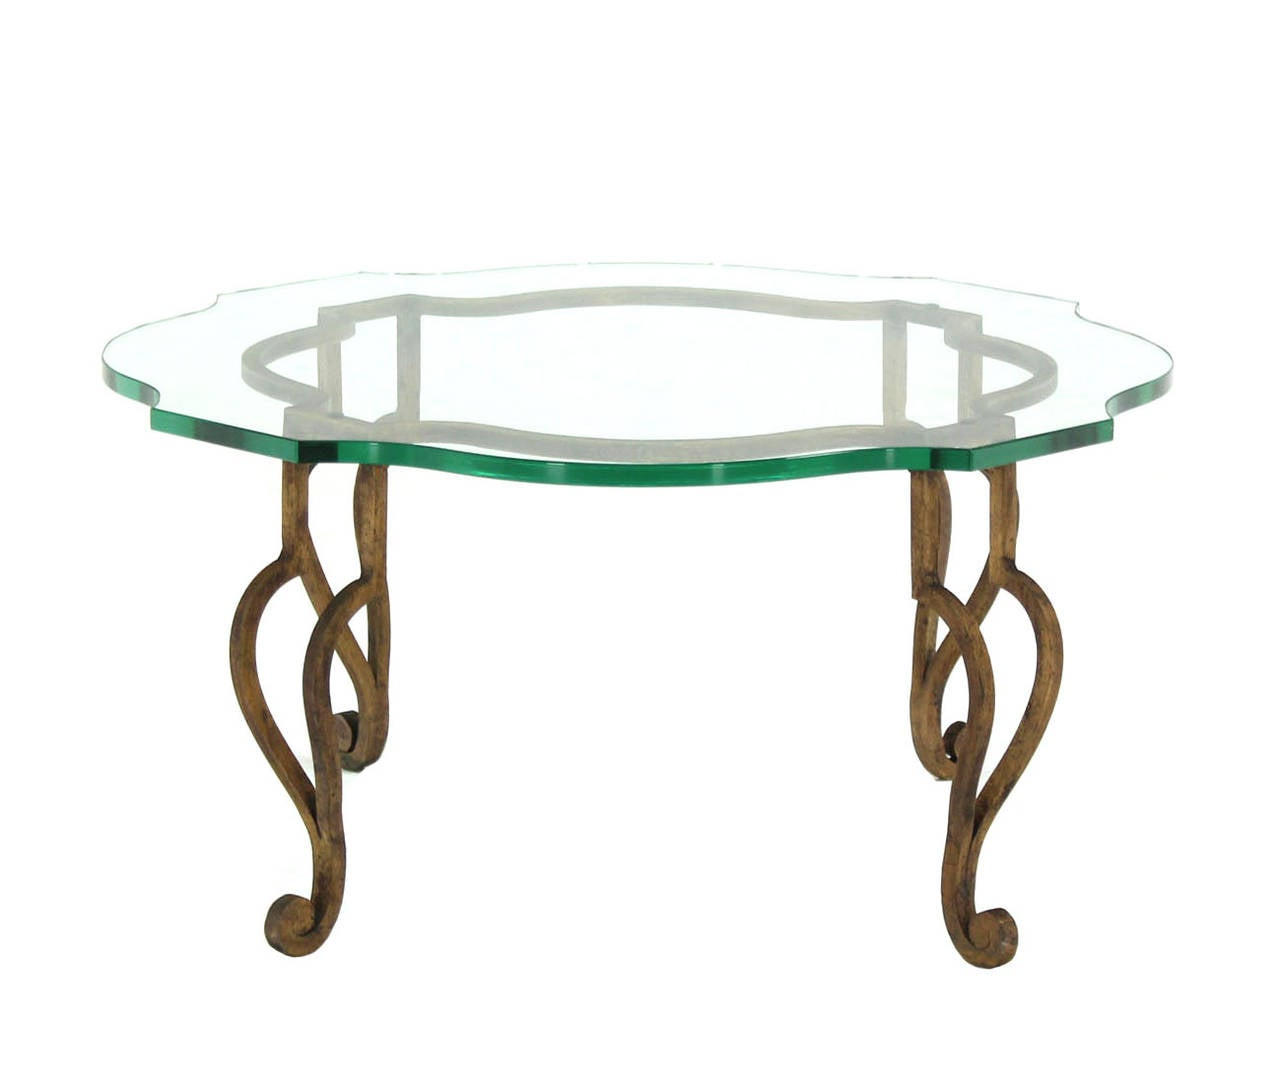 Figural wrought iron base coffee table with thick glass top for sale at 1stdibs Wrought iron coffee tables